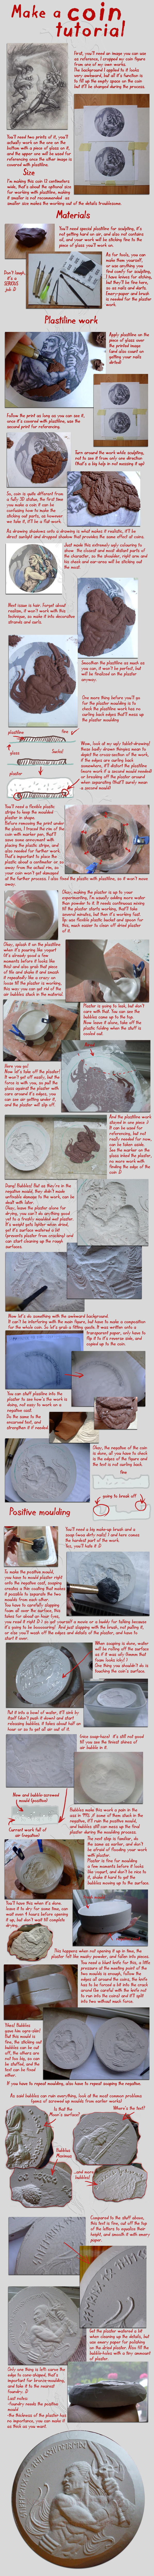 How to make a coin tutorial by KTVL-resources on DeviantArt